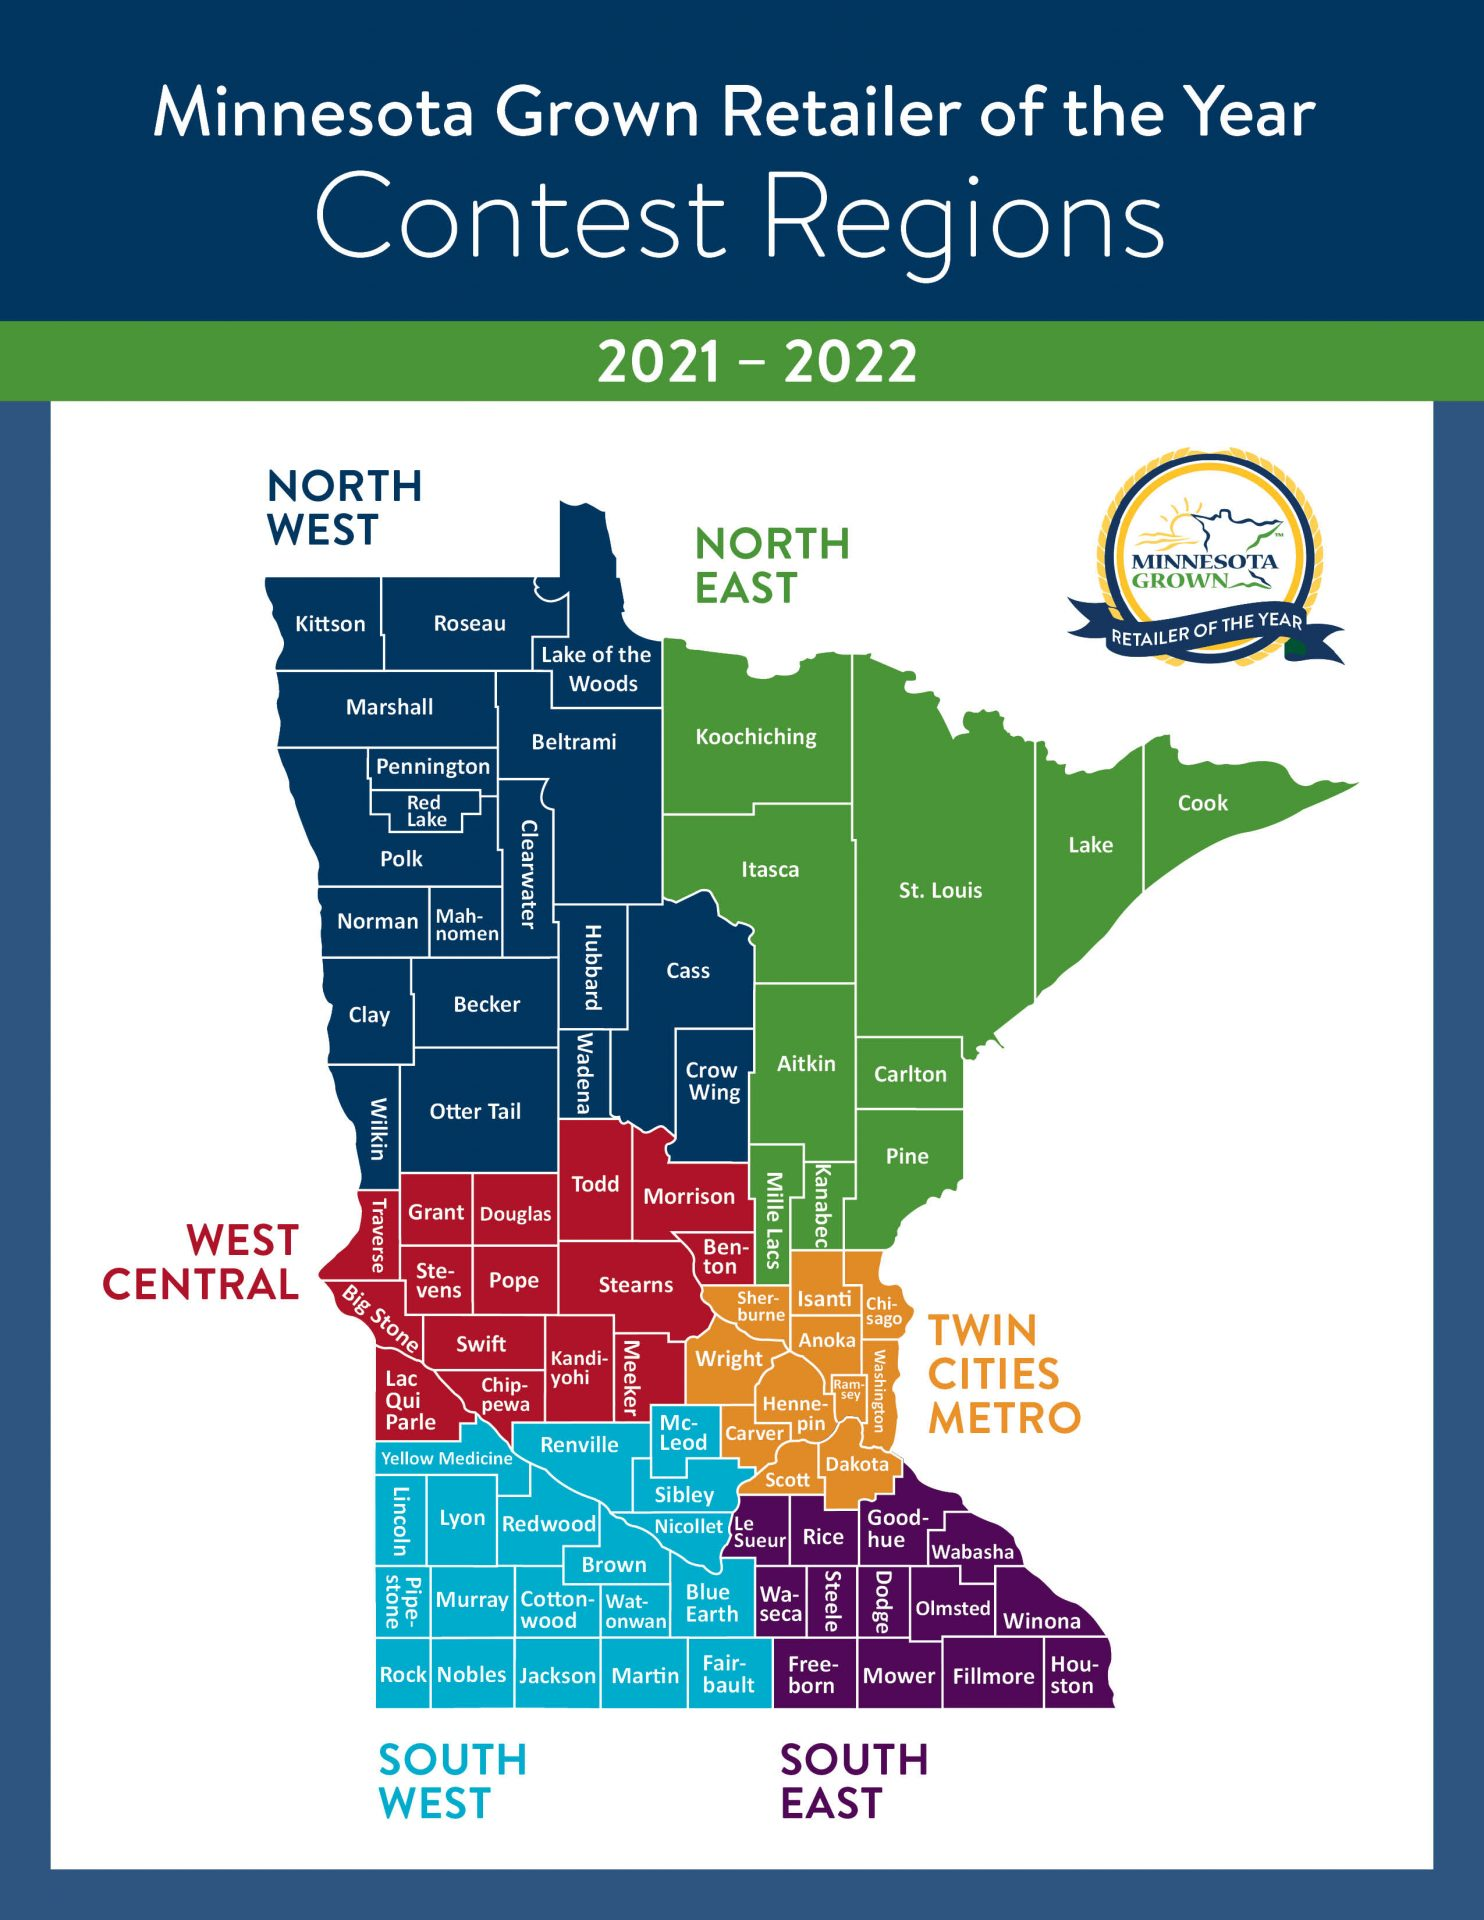 MN Grown Retailer of the Year Contest Regions MAP 2021-2022